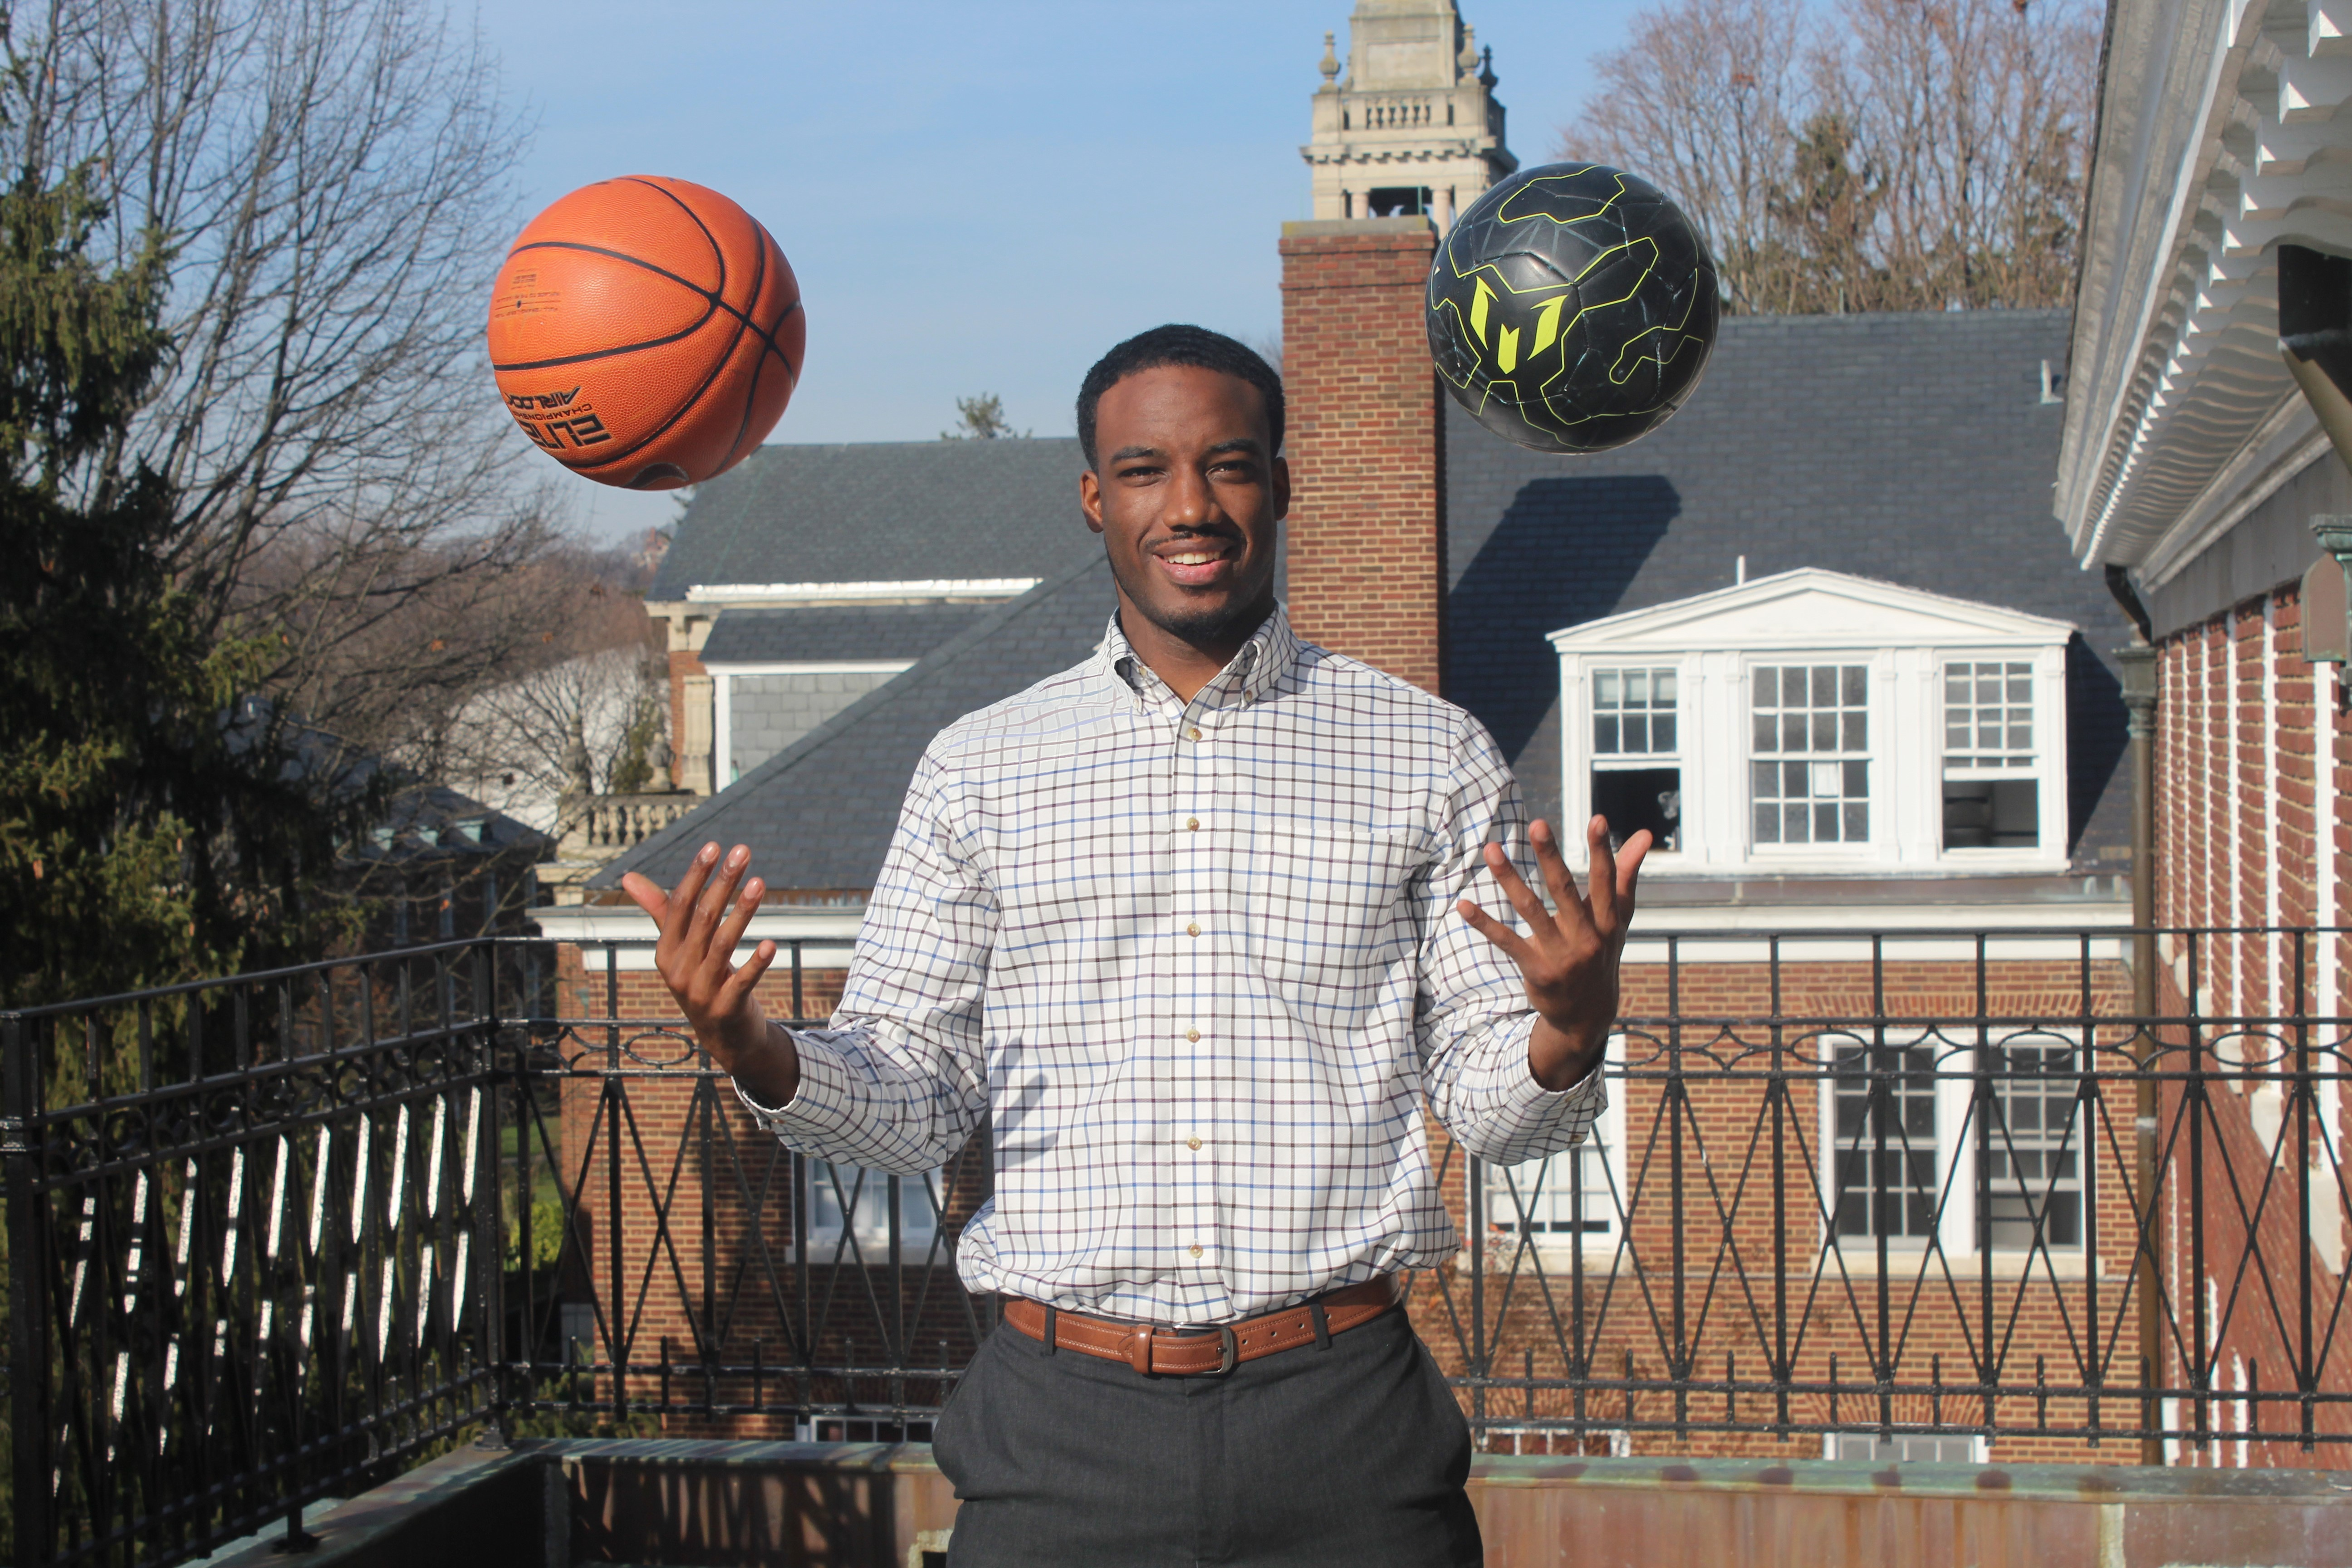 meet the dorm parents georgetown preparatory school mr young is a 2008 georgetown prep graduate born and raised in washington d c he is currently a s executive at ibm and graduated college a